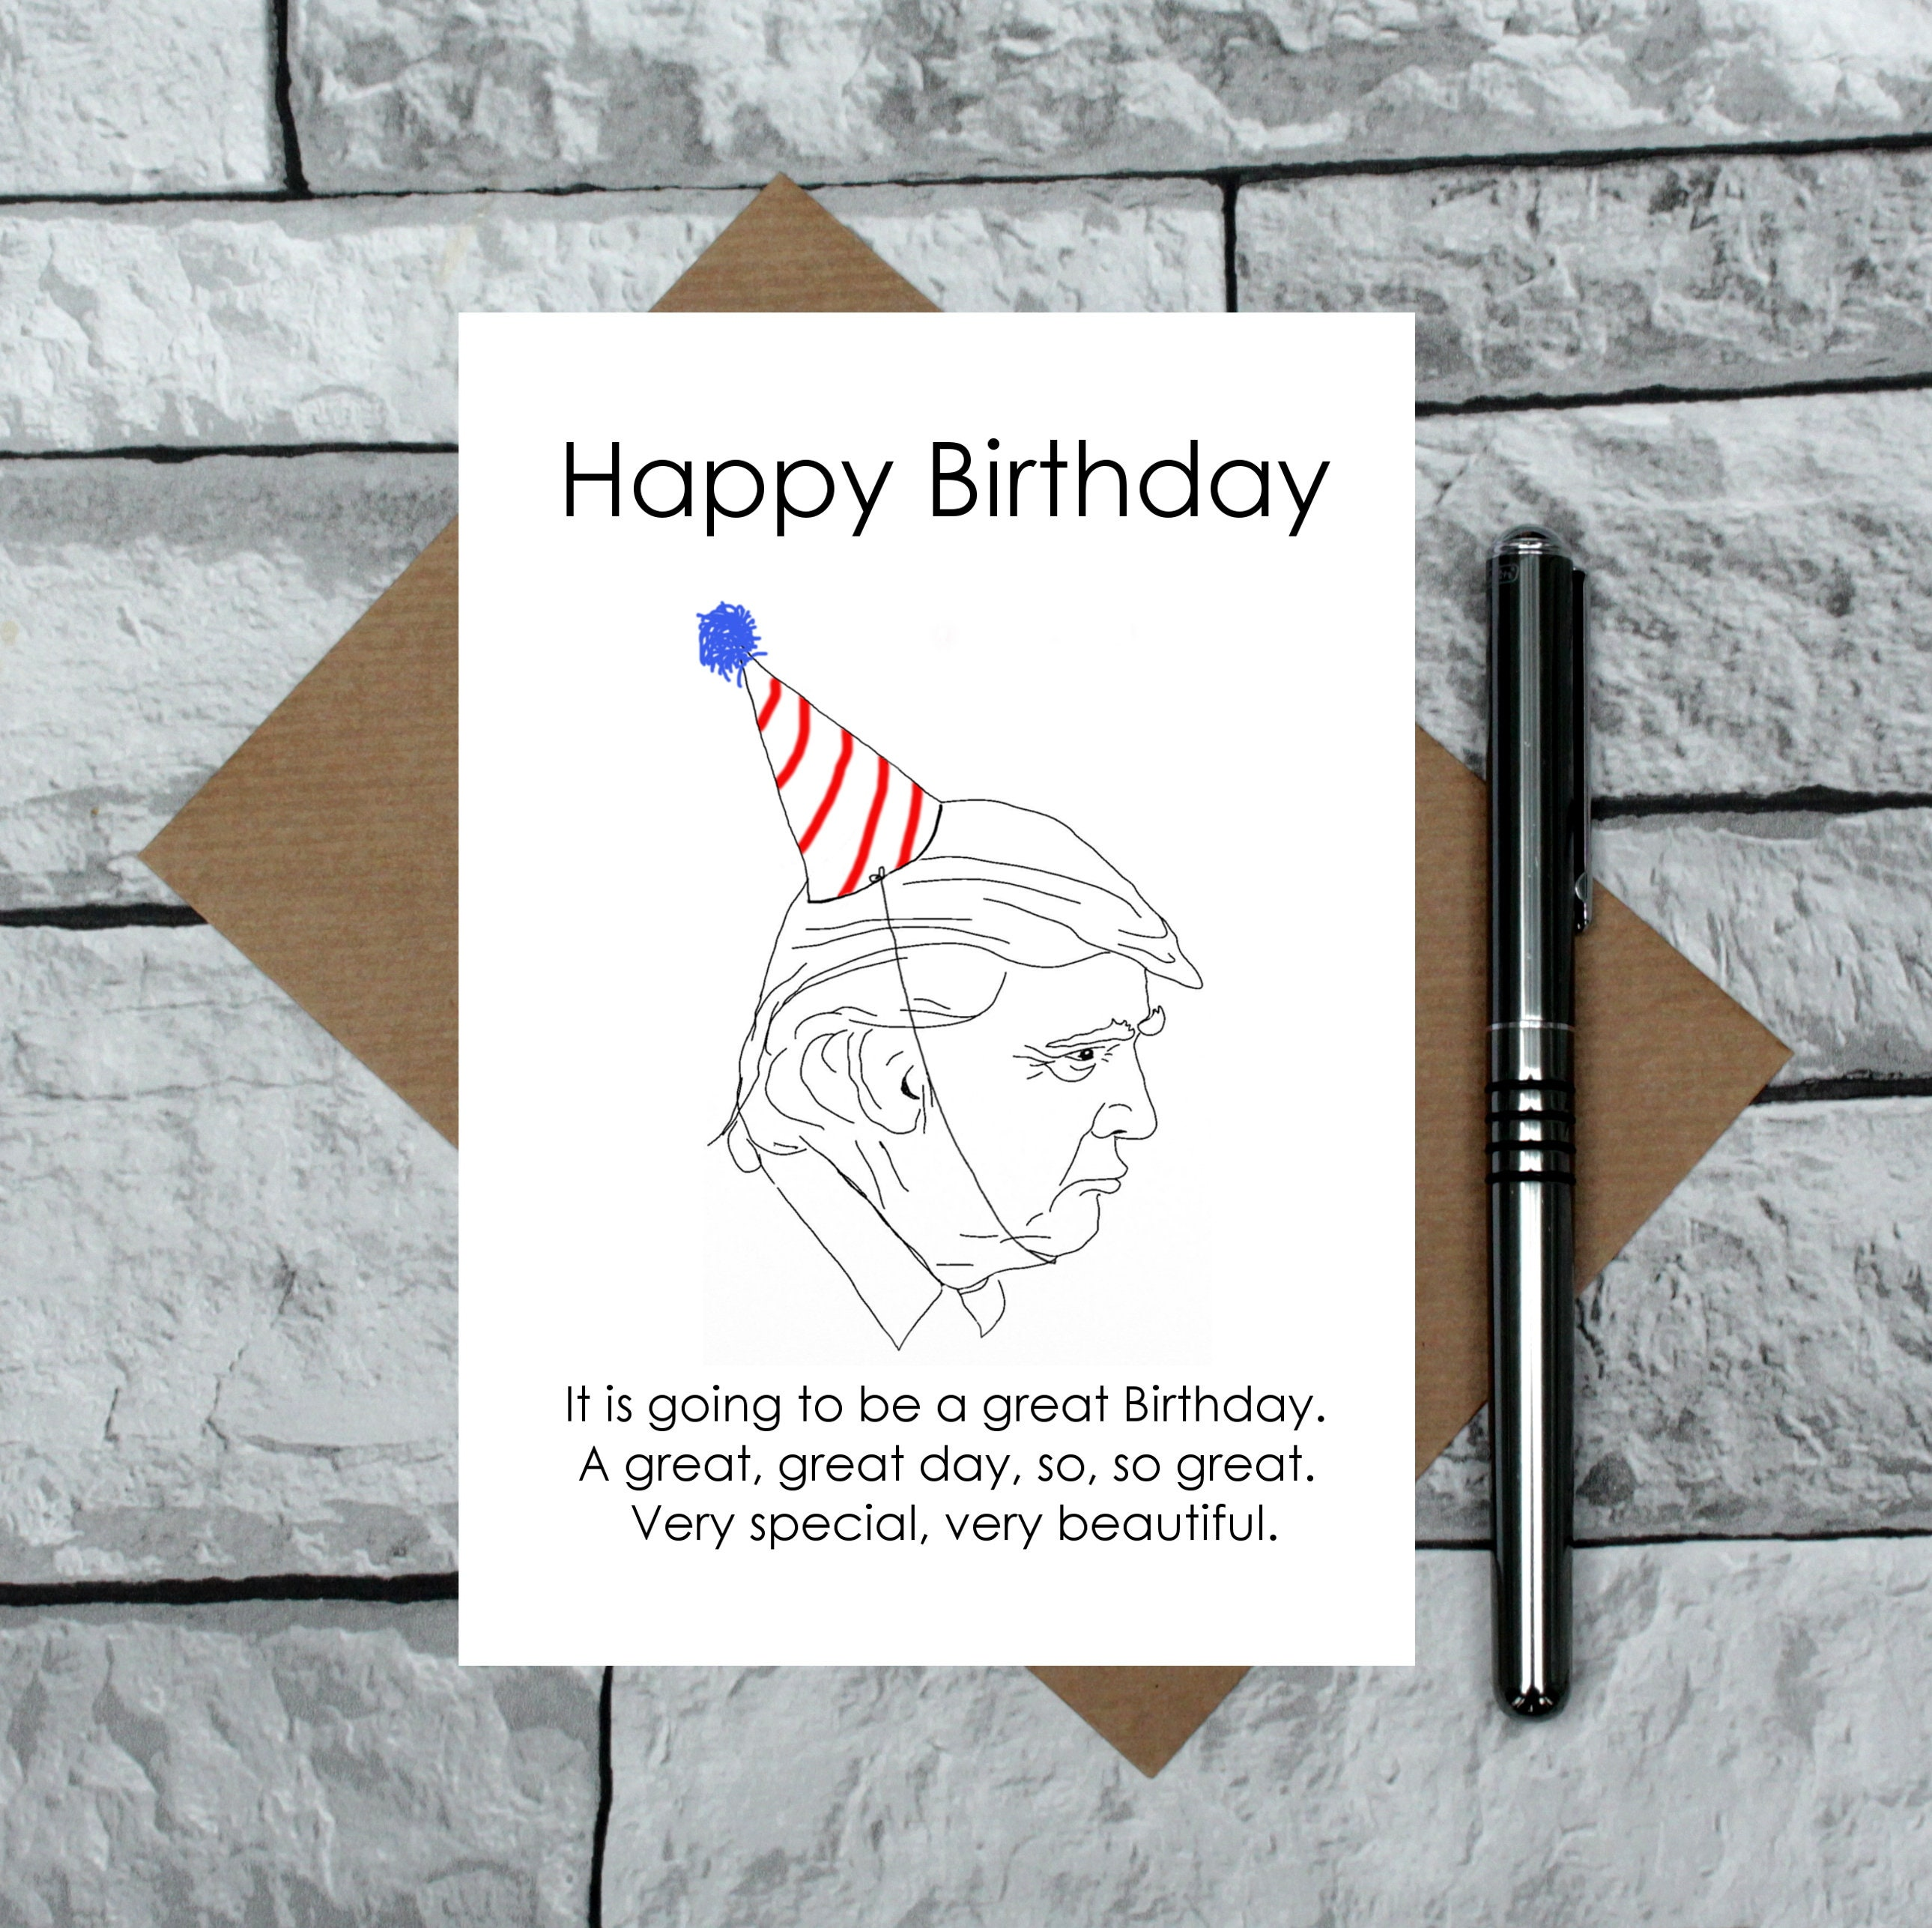 Donald Trump Birthday Card Joke Etsy Jpg 2579x2573 Memes Happy